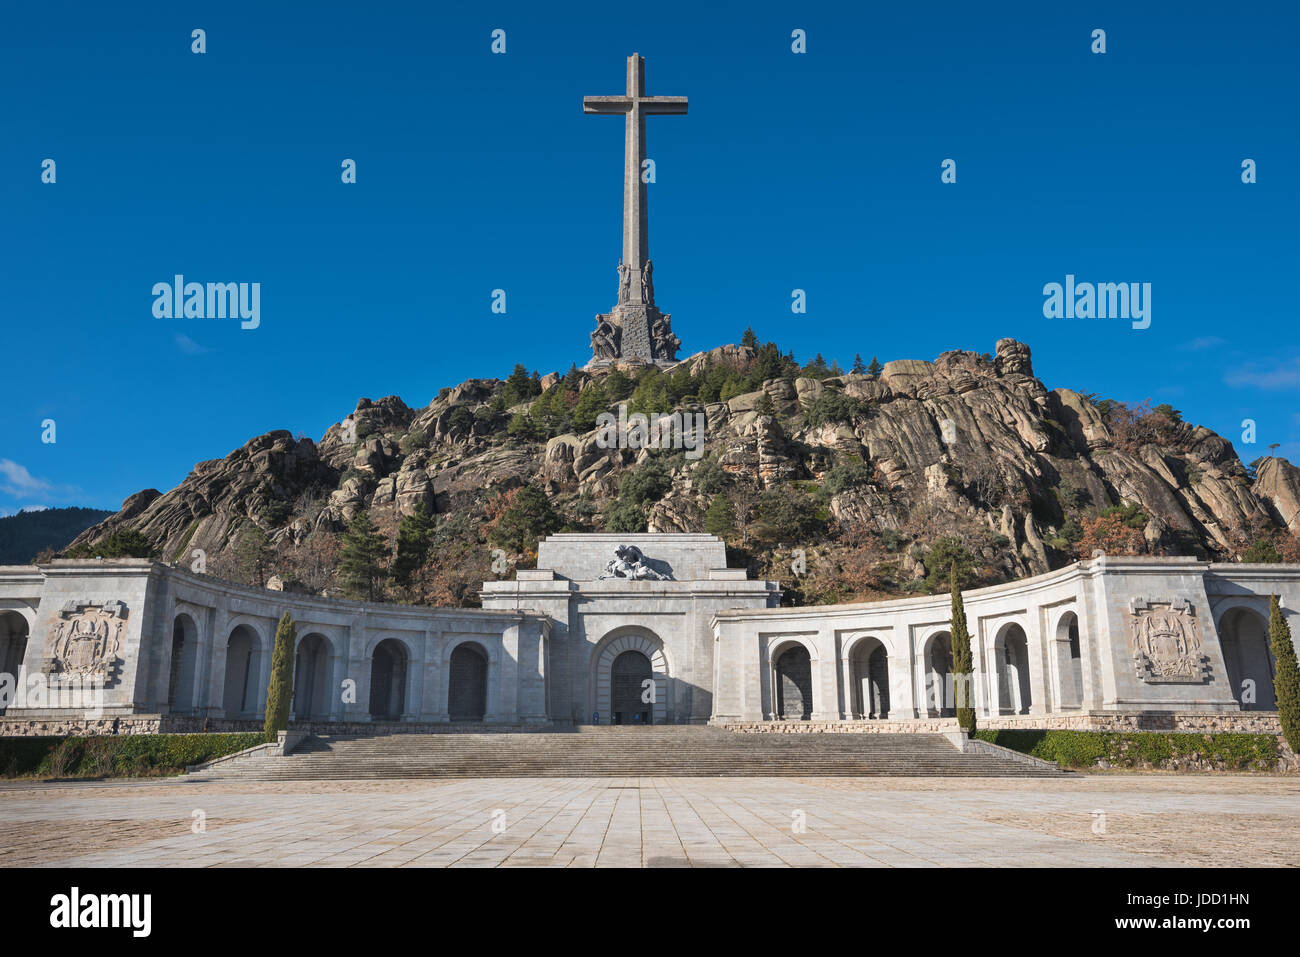 Valley of the fallen, Madrid, Spain. Stock Photo